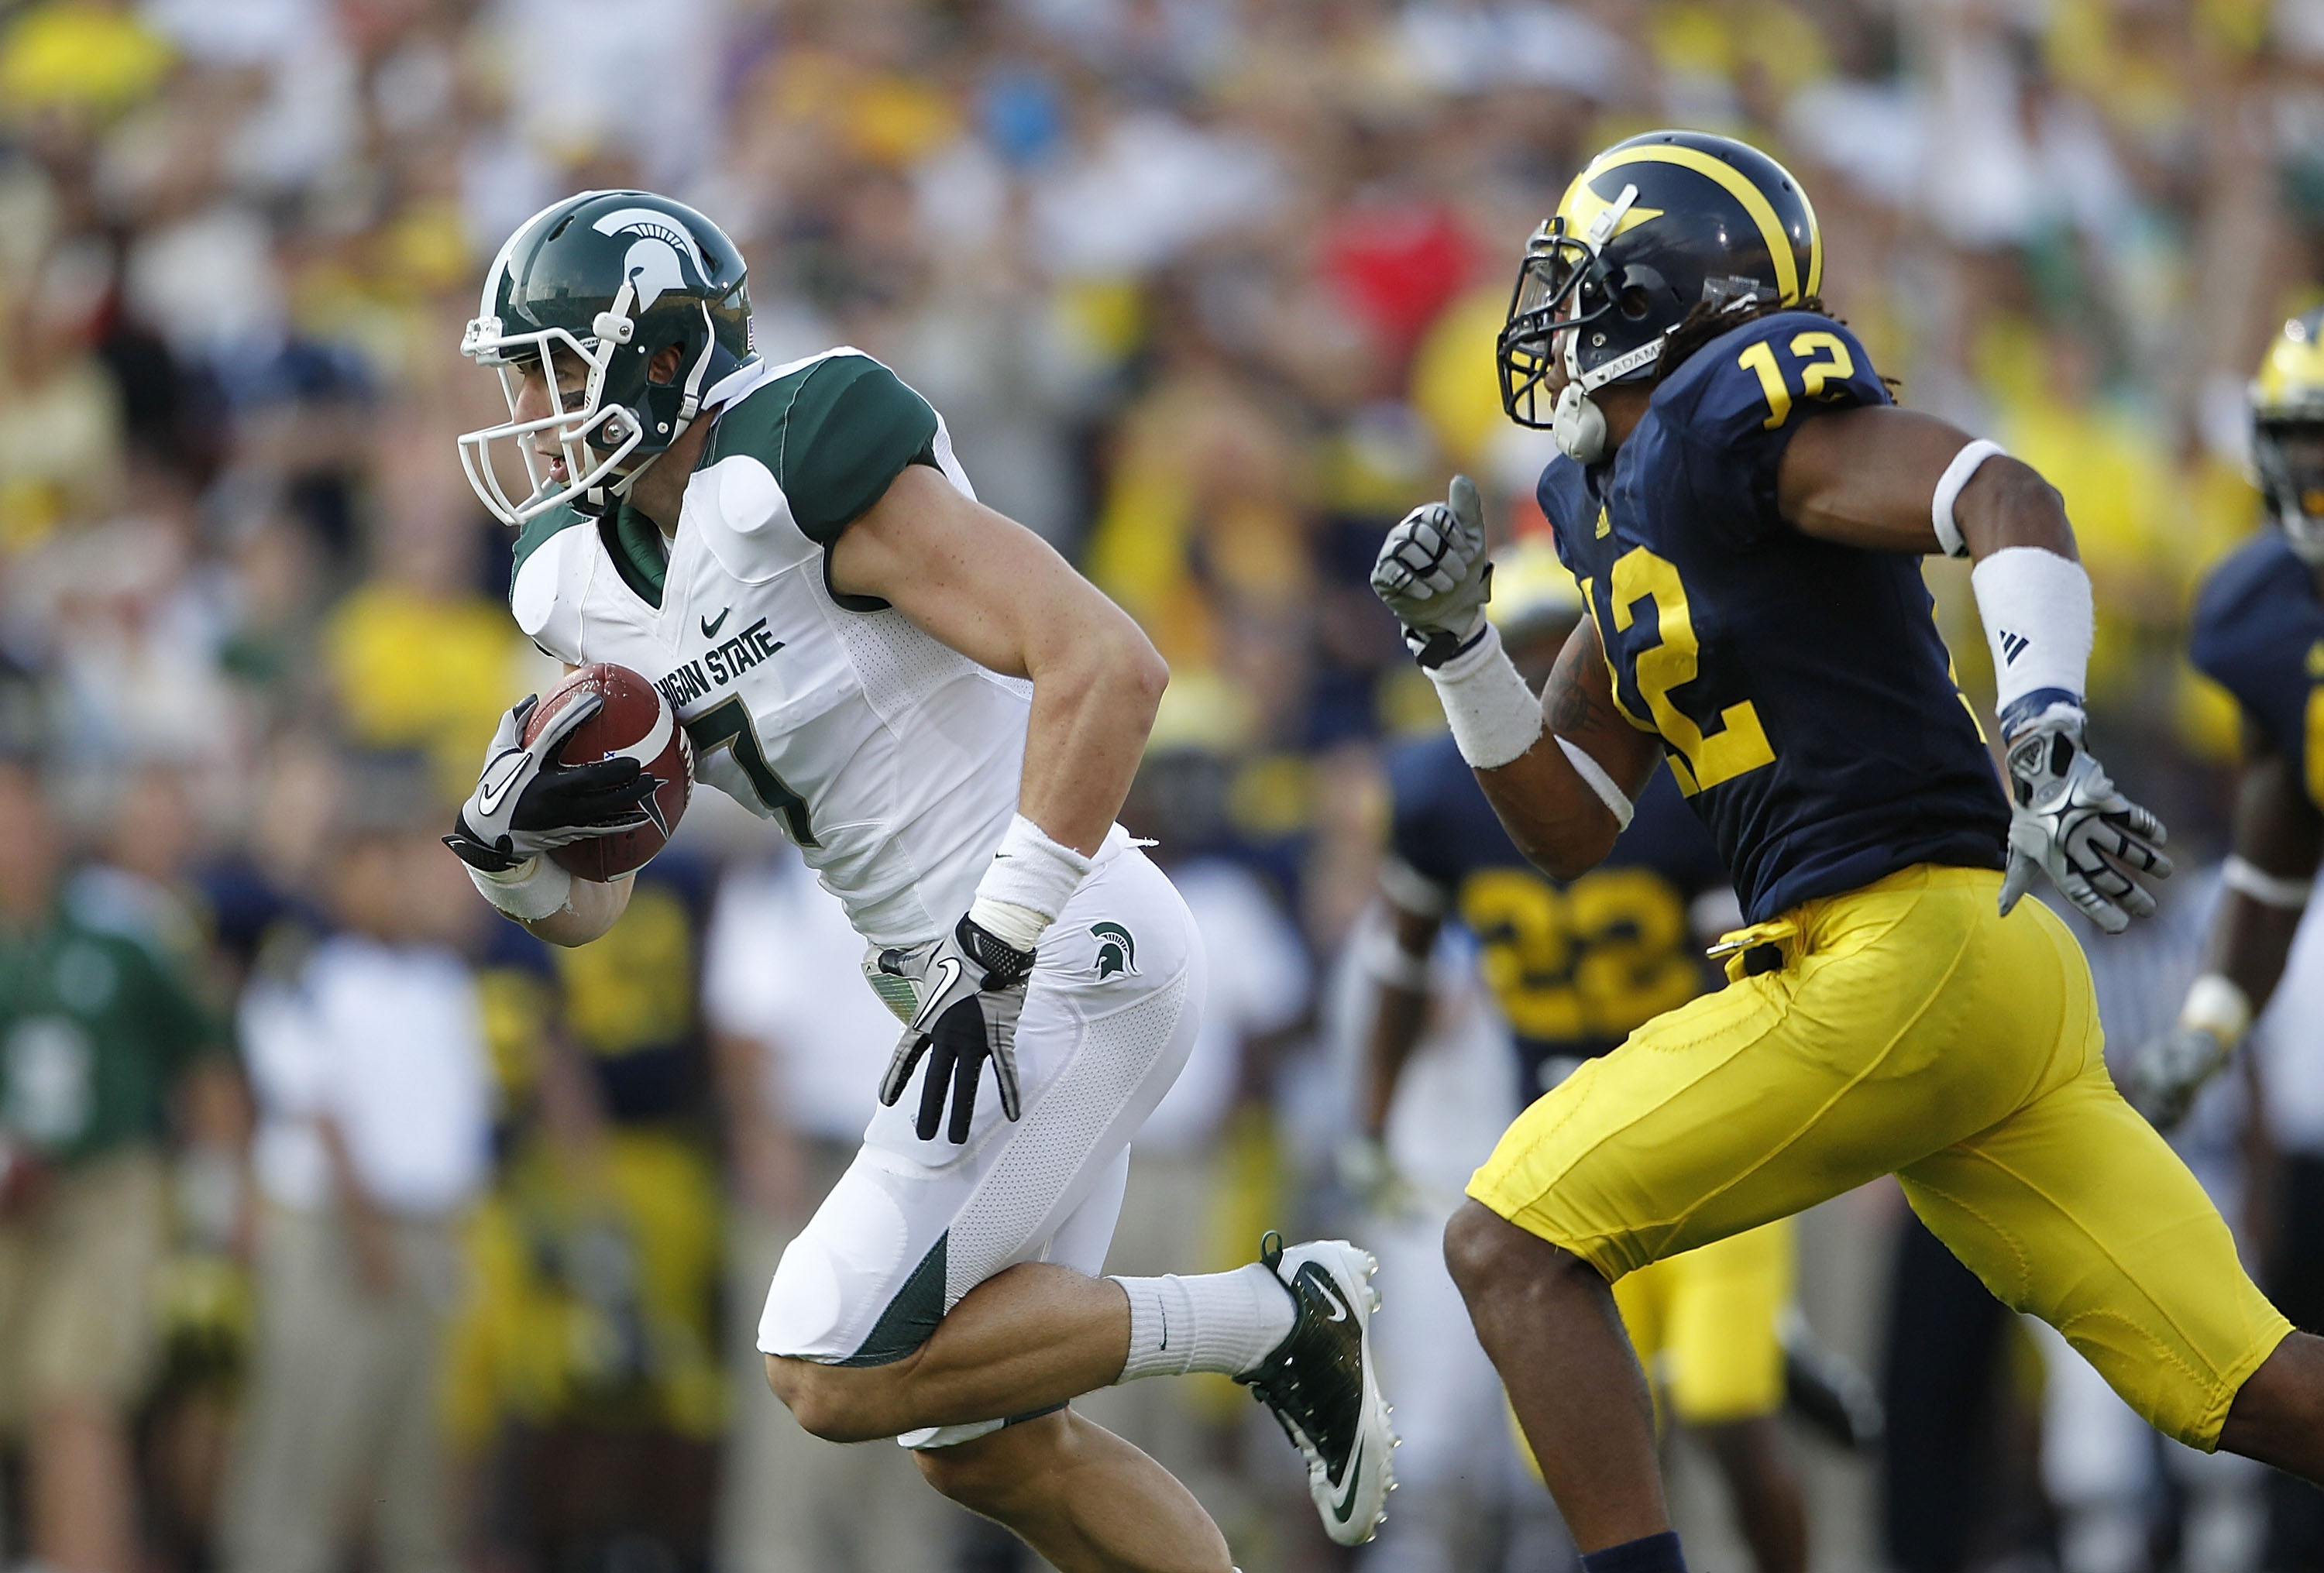 ANN ARBOR, MI - OCTOBER 09:  Steve Nichol #7 of the Michigan State Spartans runs past J. T. Floyd #12 of the Michigan Wolverines after catching a 42 yard pass compleation from Kirk Cousins #8 during the third quarter of the game against the Michigan Wolve